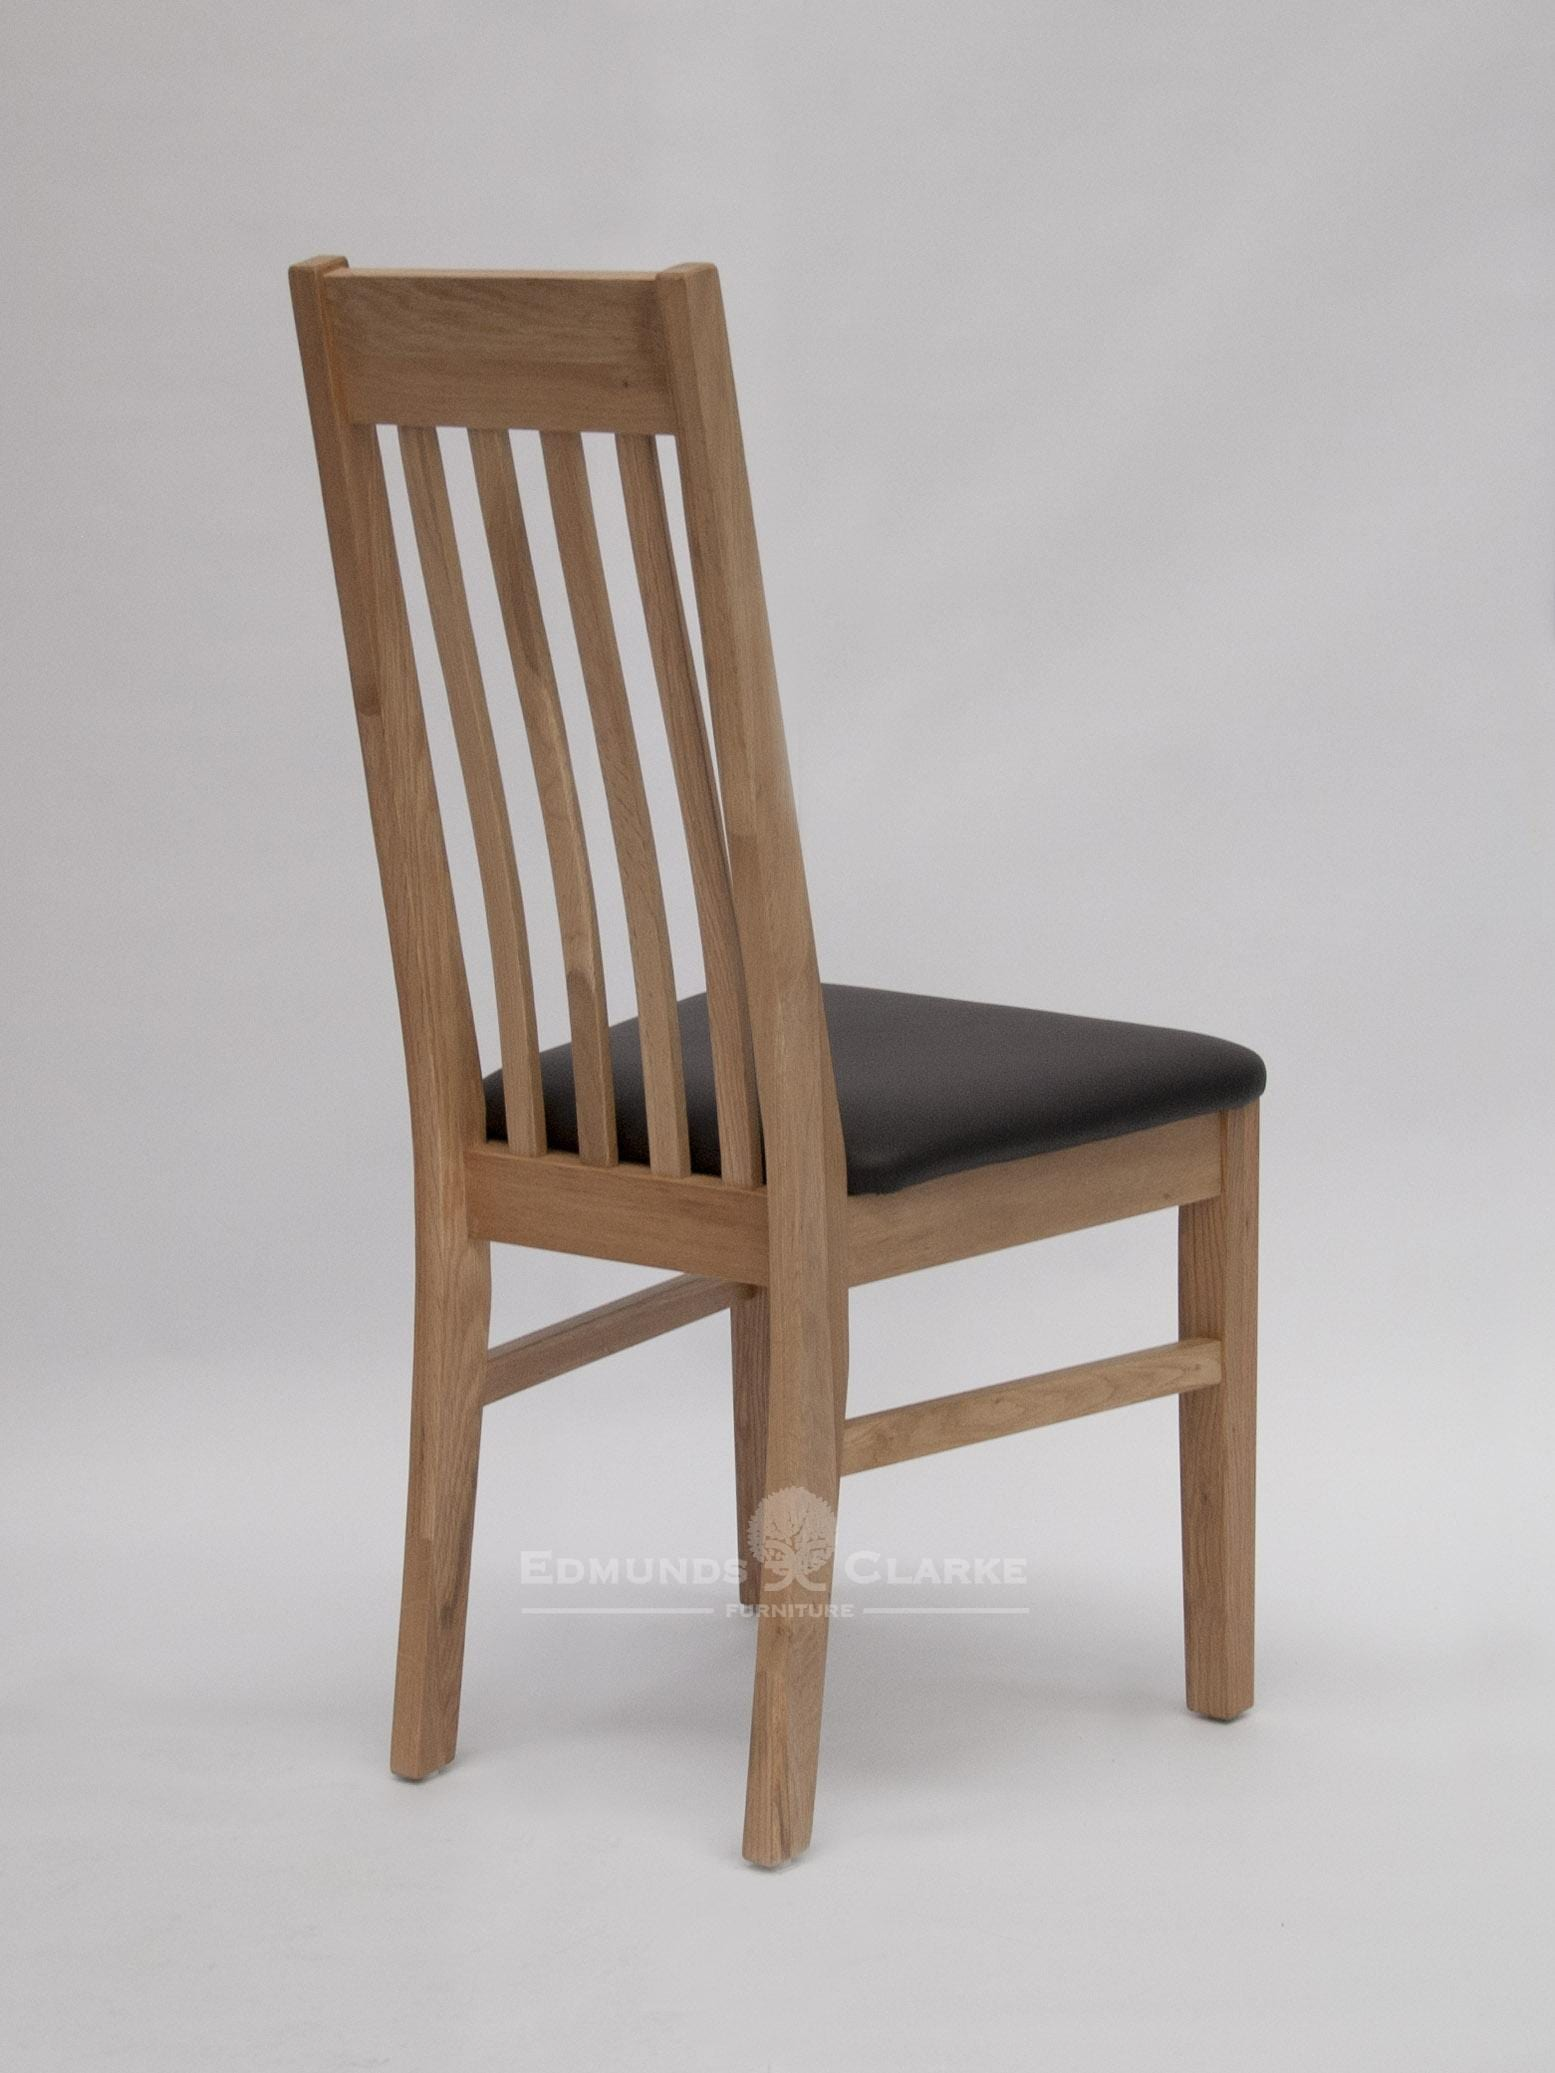 Sophia oak dining chair. slatted back with small lumbar support and faux leather seat pad for extra comfort